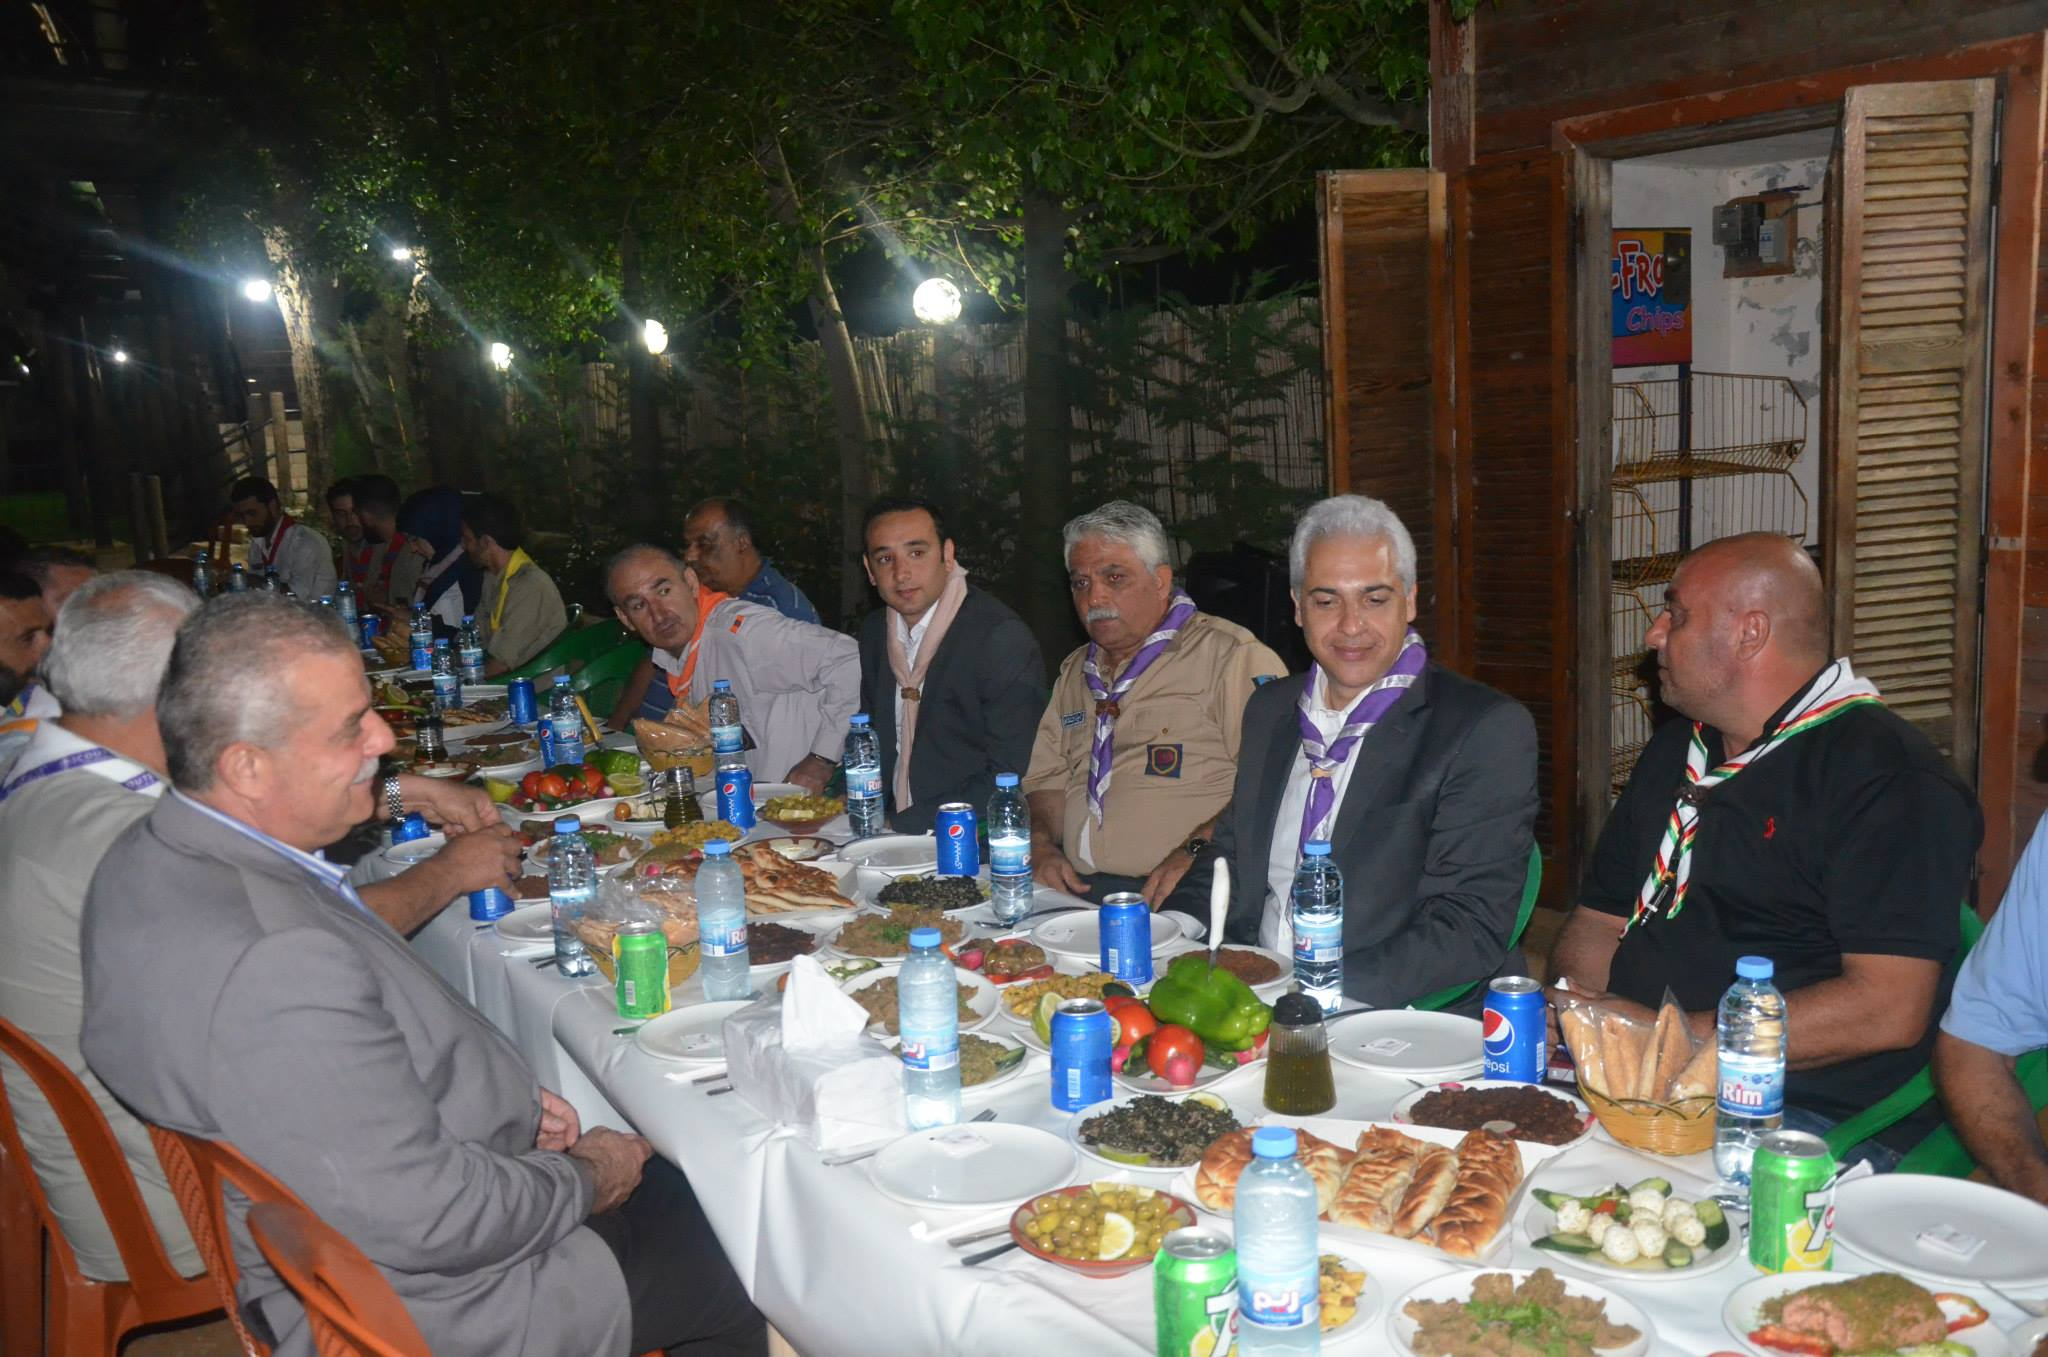 Scouts reunion dinner organized with the objective to strengthen cooperation between scouts organizations leading to betterment in societies